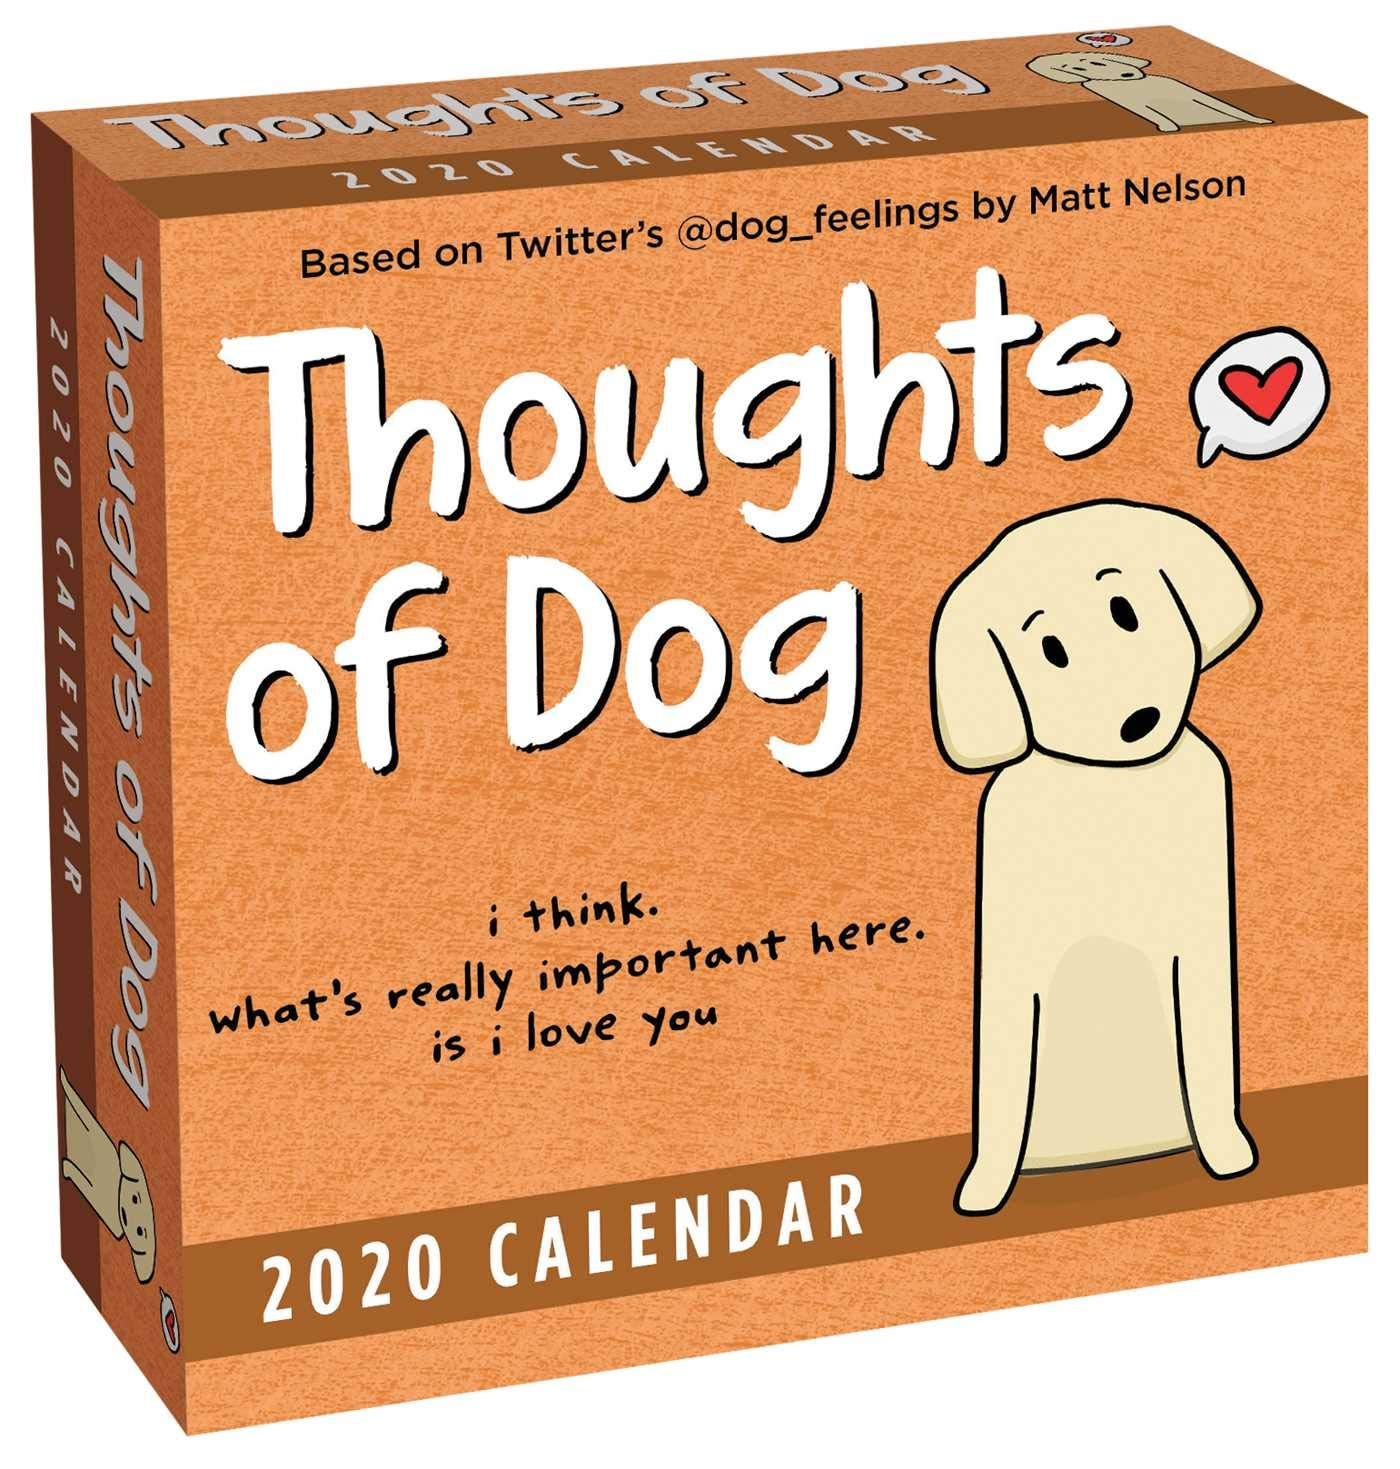 What\\\\\\\\\\\\\\\\\\\\\\\\\\\\\\\'S The Best Tablet For 2020 Thoughts of Dog 2020 Day to Day Calendar: Matt Nelson